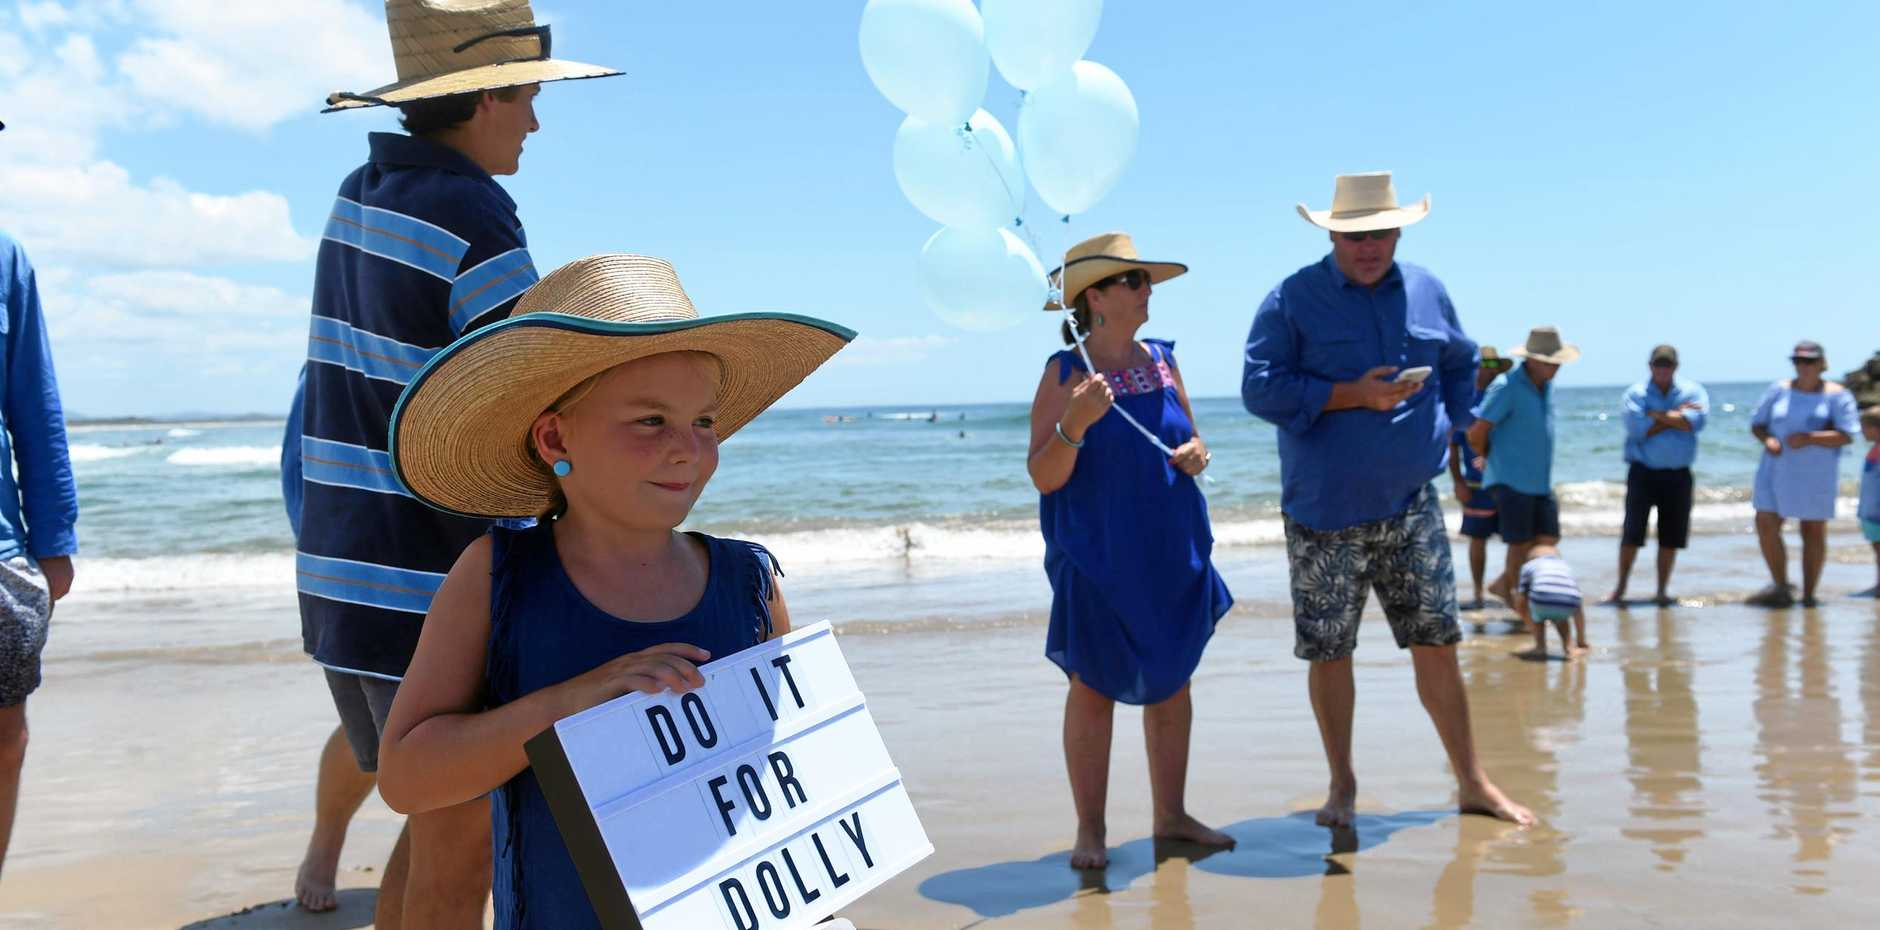 Tilly Ryan with family Bec, Cody, Jim and Darby at Evans Head main beach where they held a memorial for 14-year-old Dolly Everett following her tragic suicide.